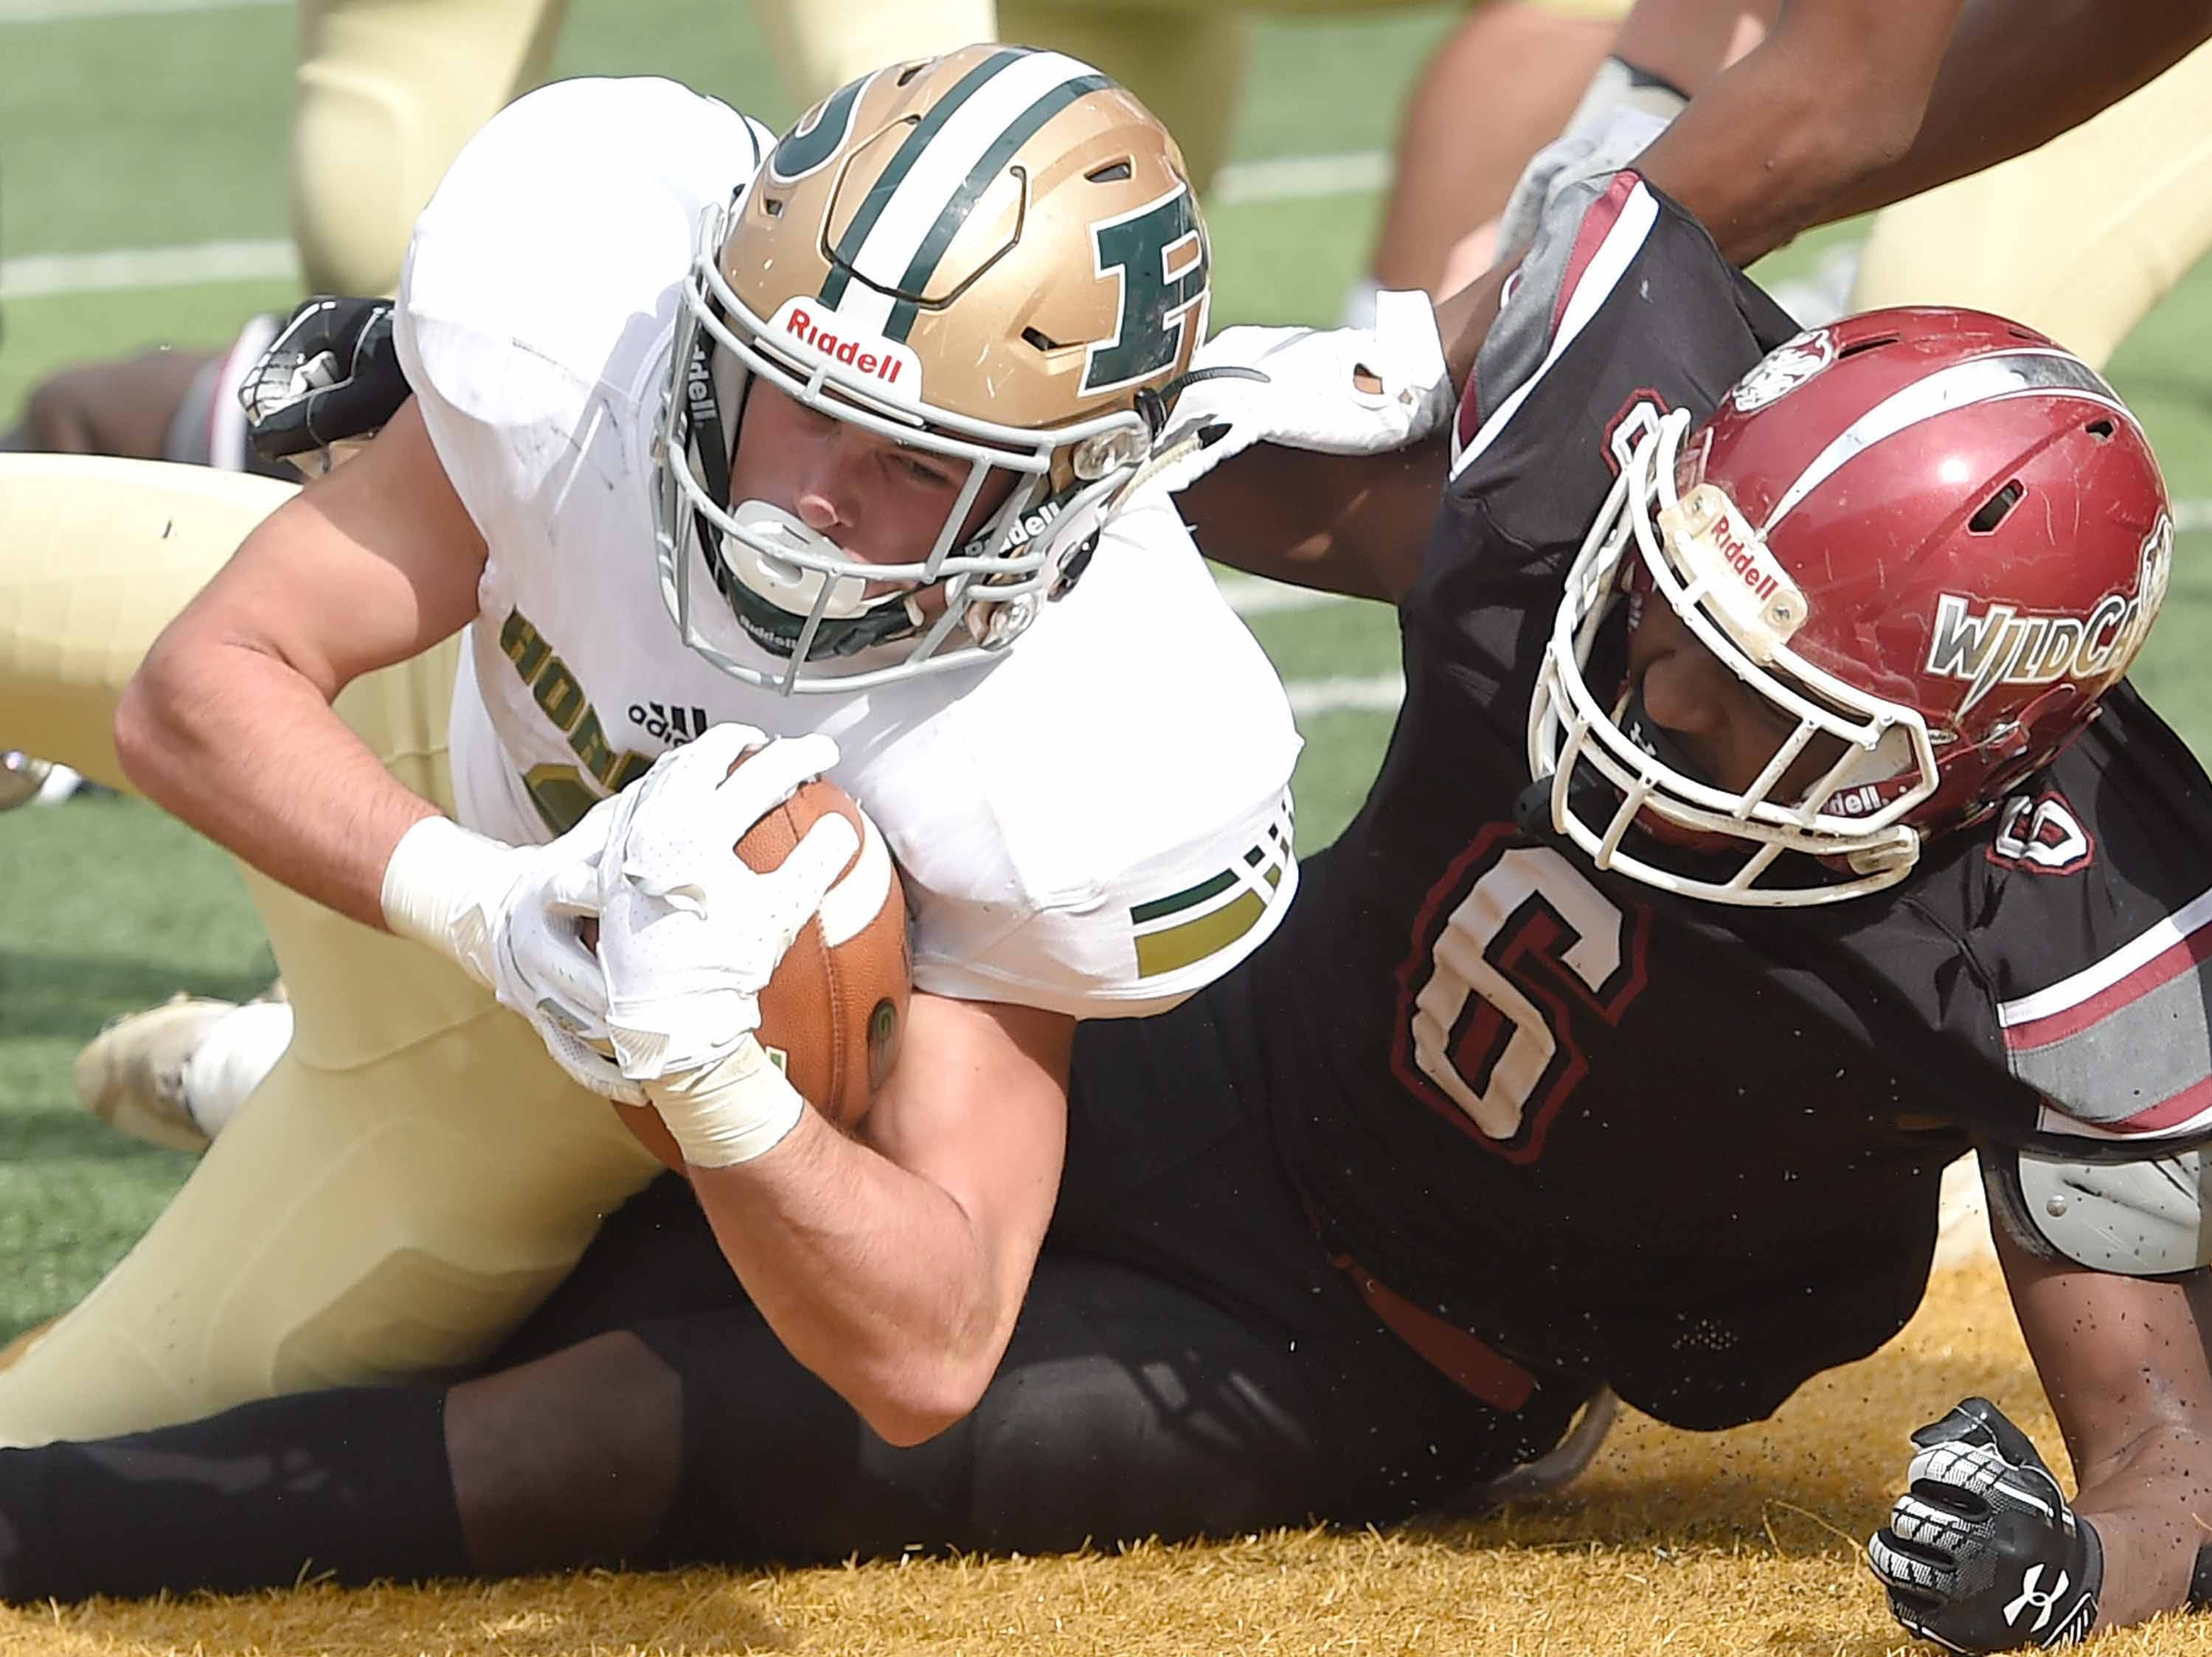 Poplarville's Tyson Holston (left) scores his second of three touchdowns against Louisville on Saturday, December 1, 2018, in the MHSAA BlueCross BlueShield Gridiron Classic High School Football Championships in M.M. Roberts Stadium on the University of Southern Mississippi campus in Hattiesburg, Miss.